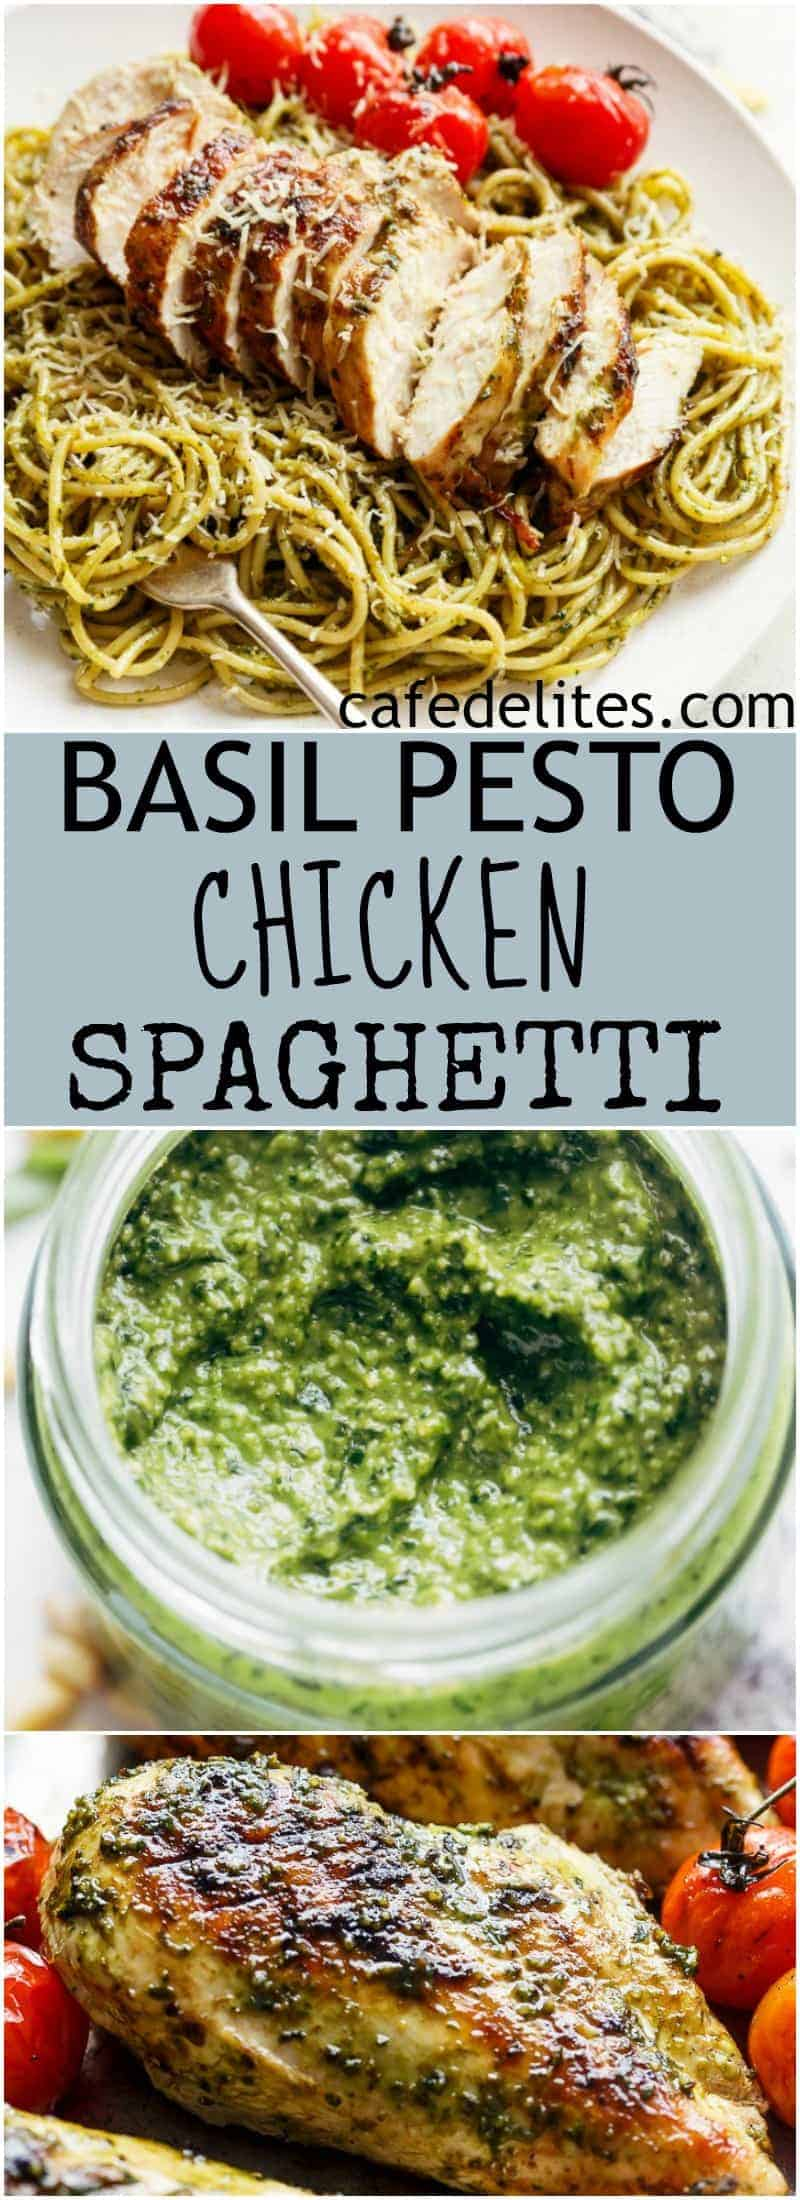 Basil Pesto Chicken Spaghetti is packed with flavour and comes together so quickly. It's sure to become a week-night favourite! | https://cafedelites.com